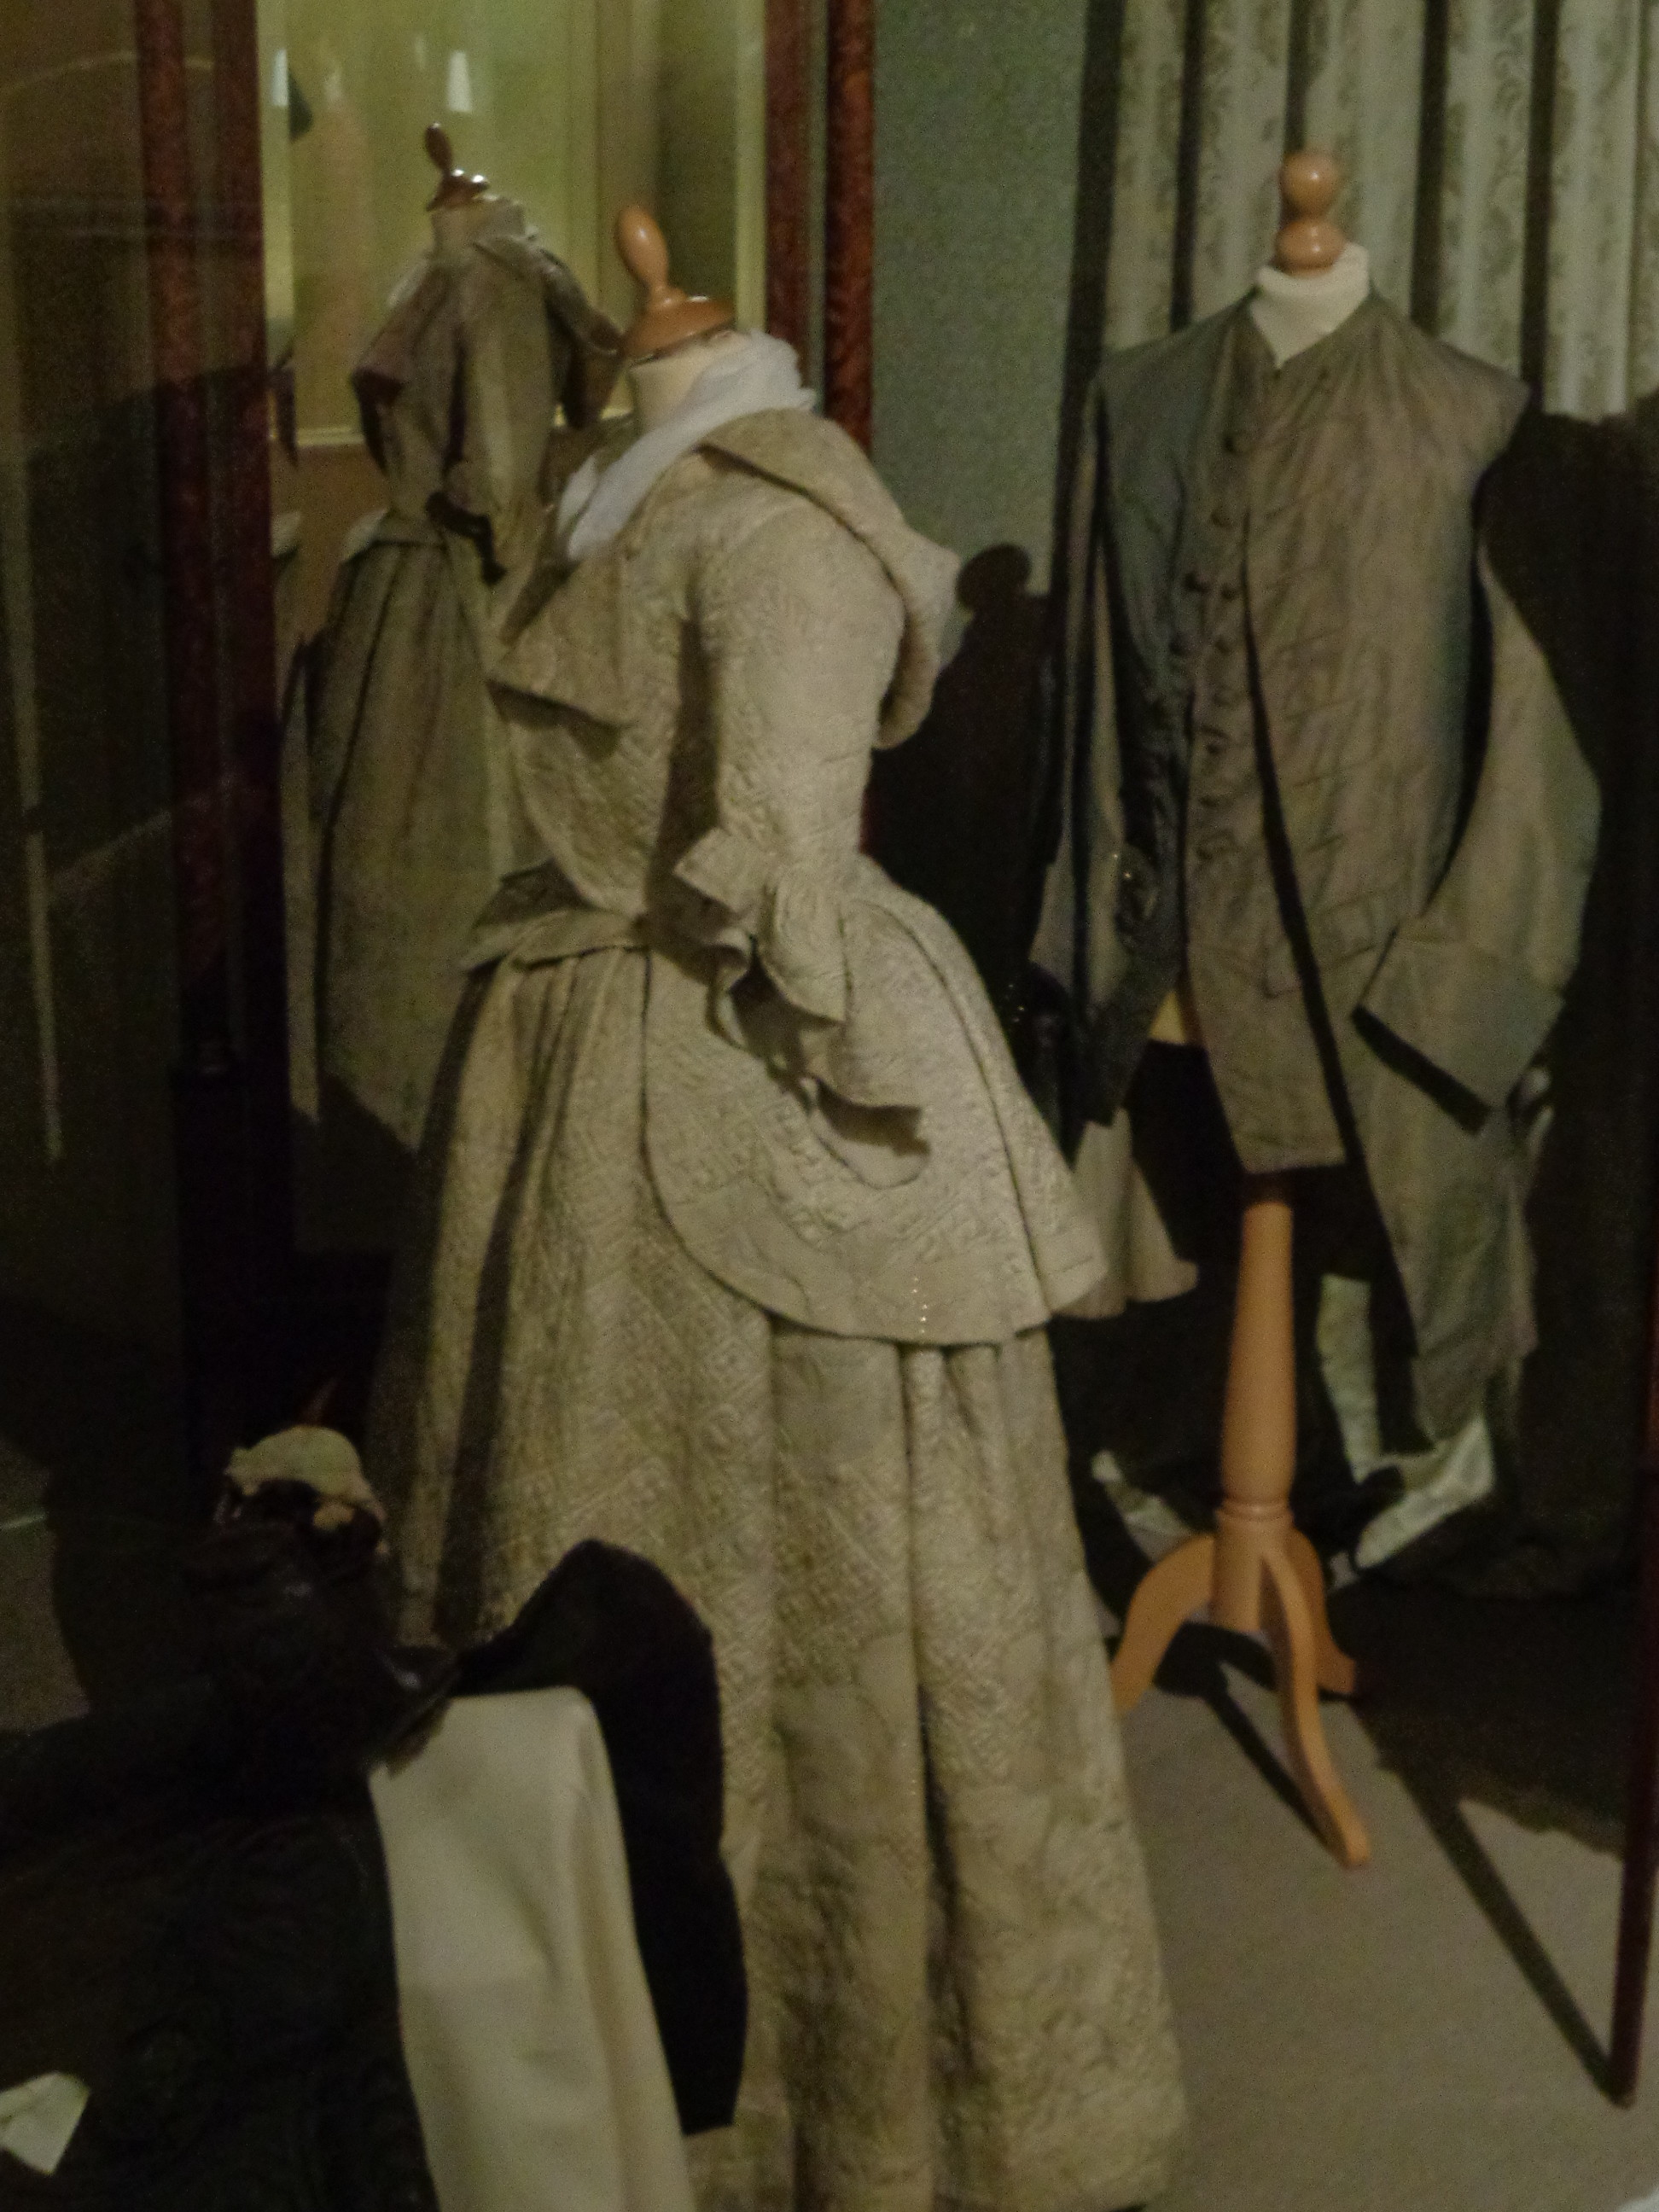 snowshill quilted travelling jacket and petticoat, poldark quilted gown, what the georgians wore, replica historical costumes